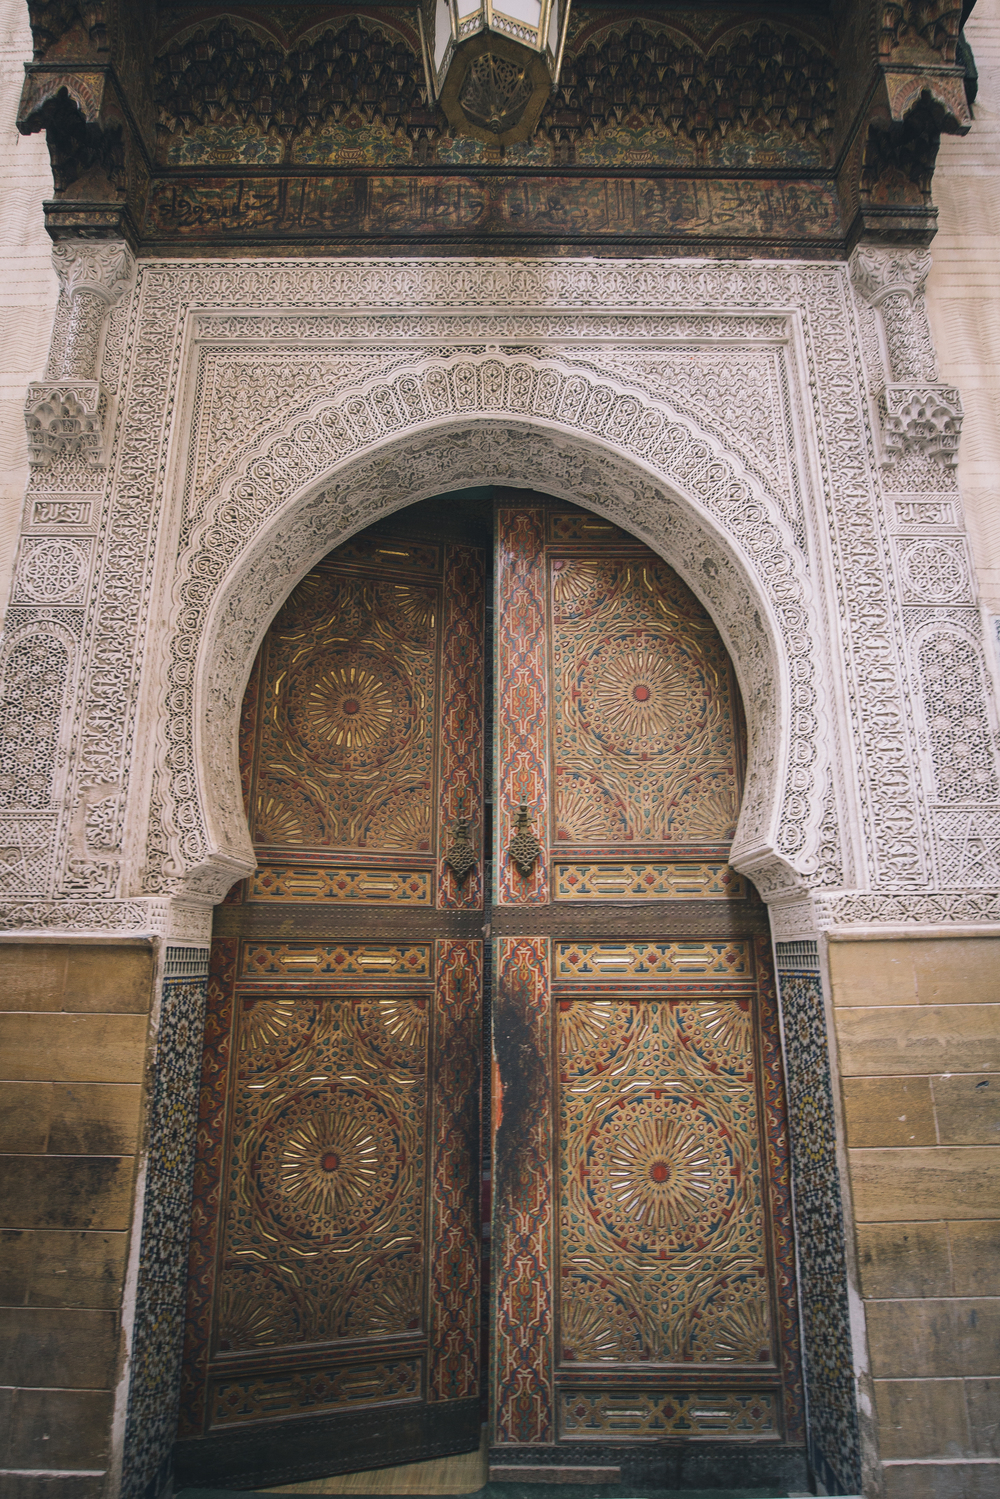 Worn Mosque Entry